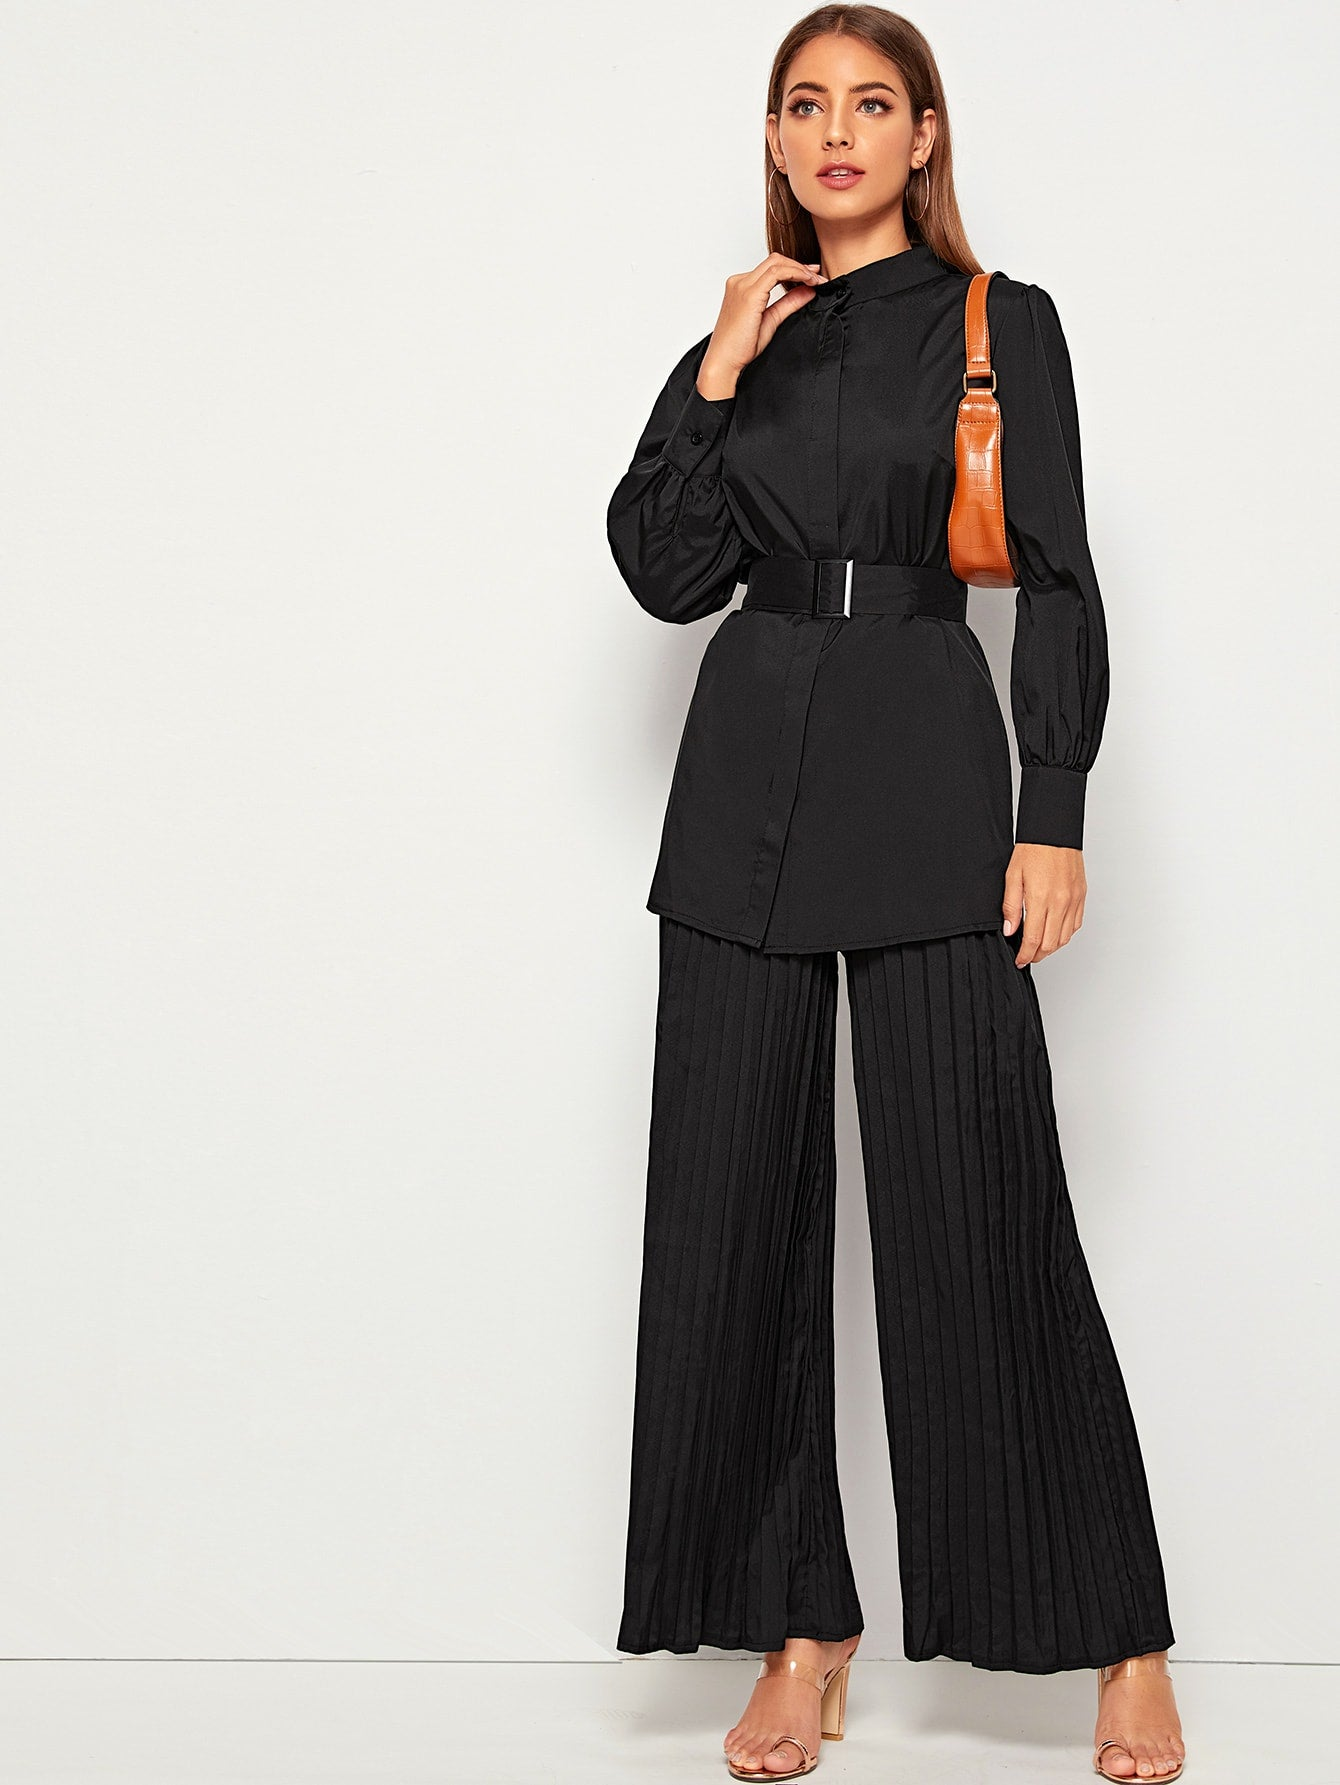 Belted Blouse & Pleated Wide Leg Trousers-Trendy-JayBoutique-Black-XS-Trendy-JayBoutique